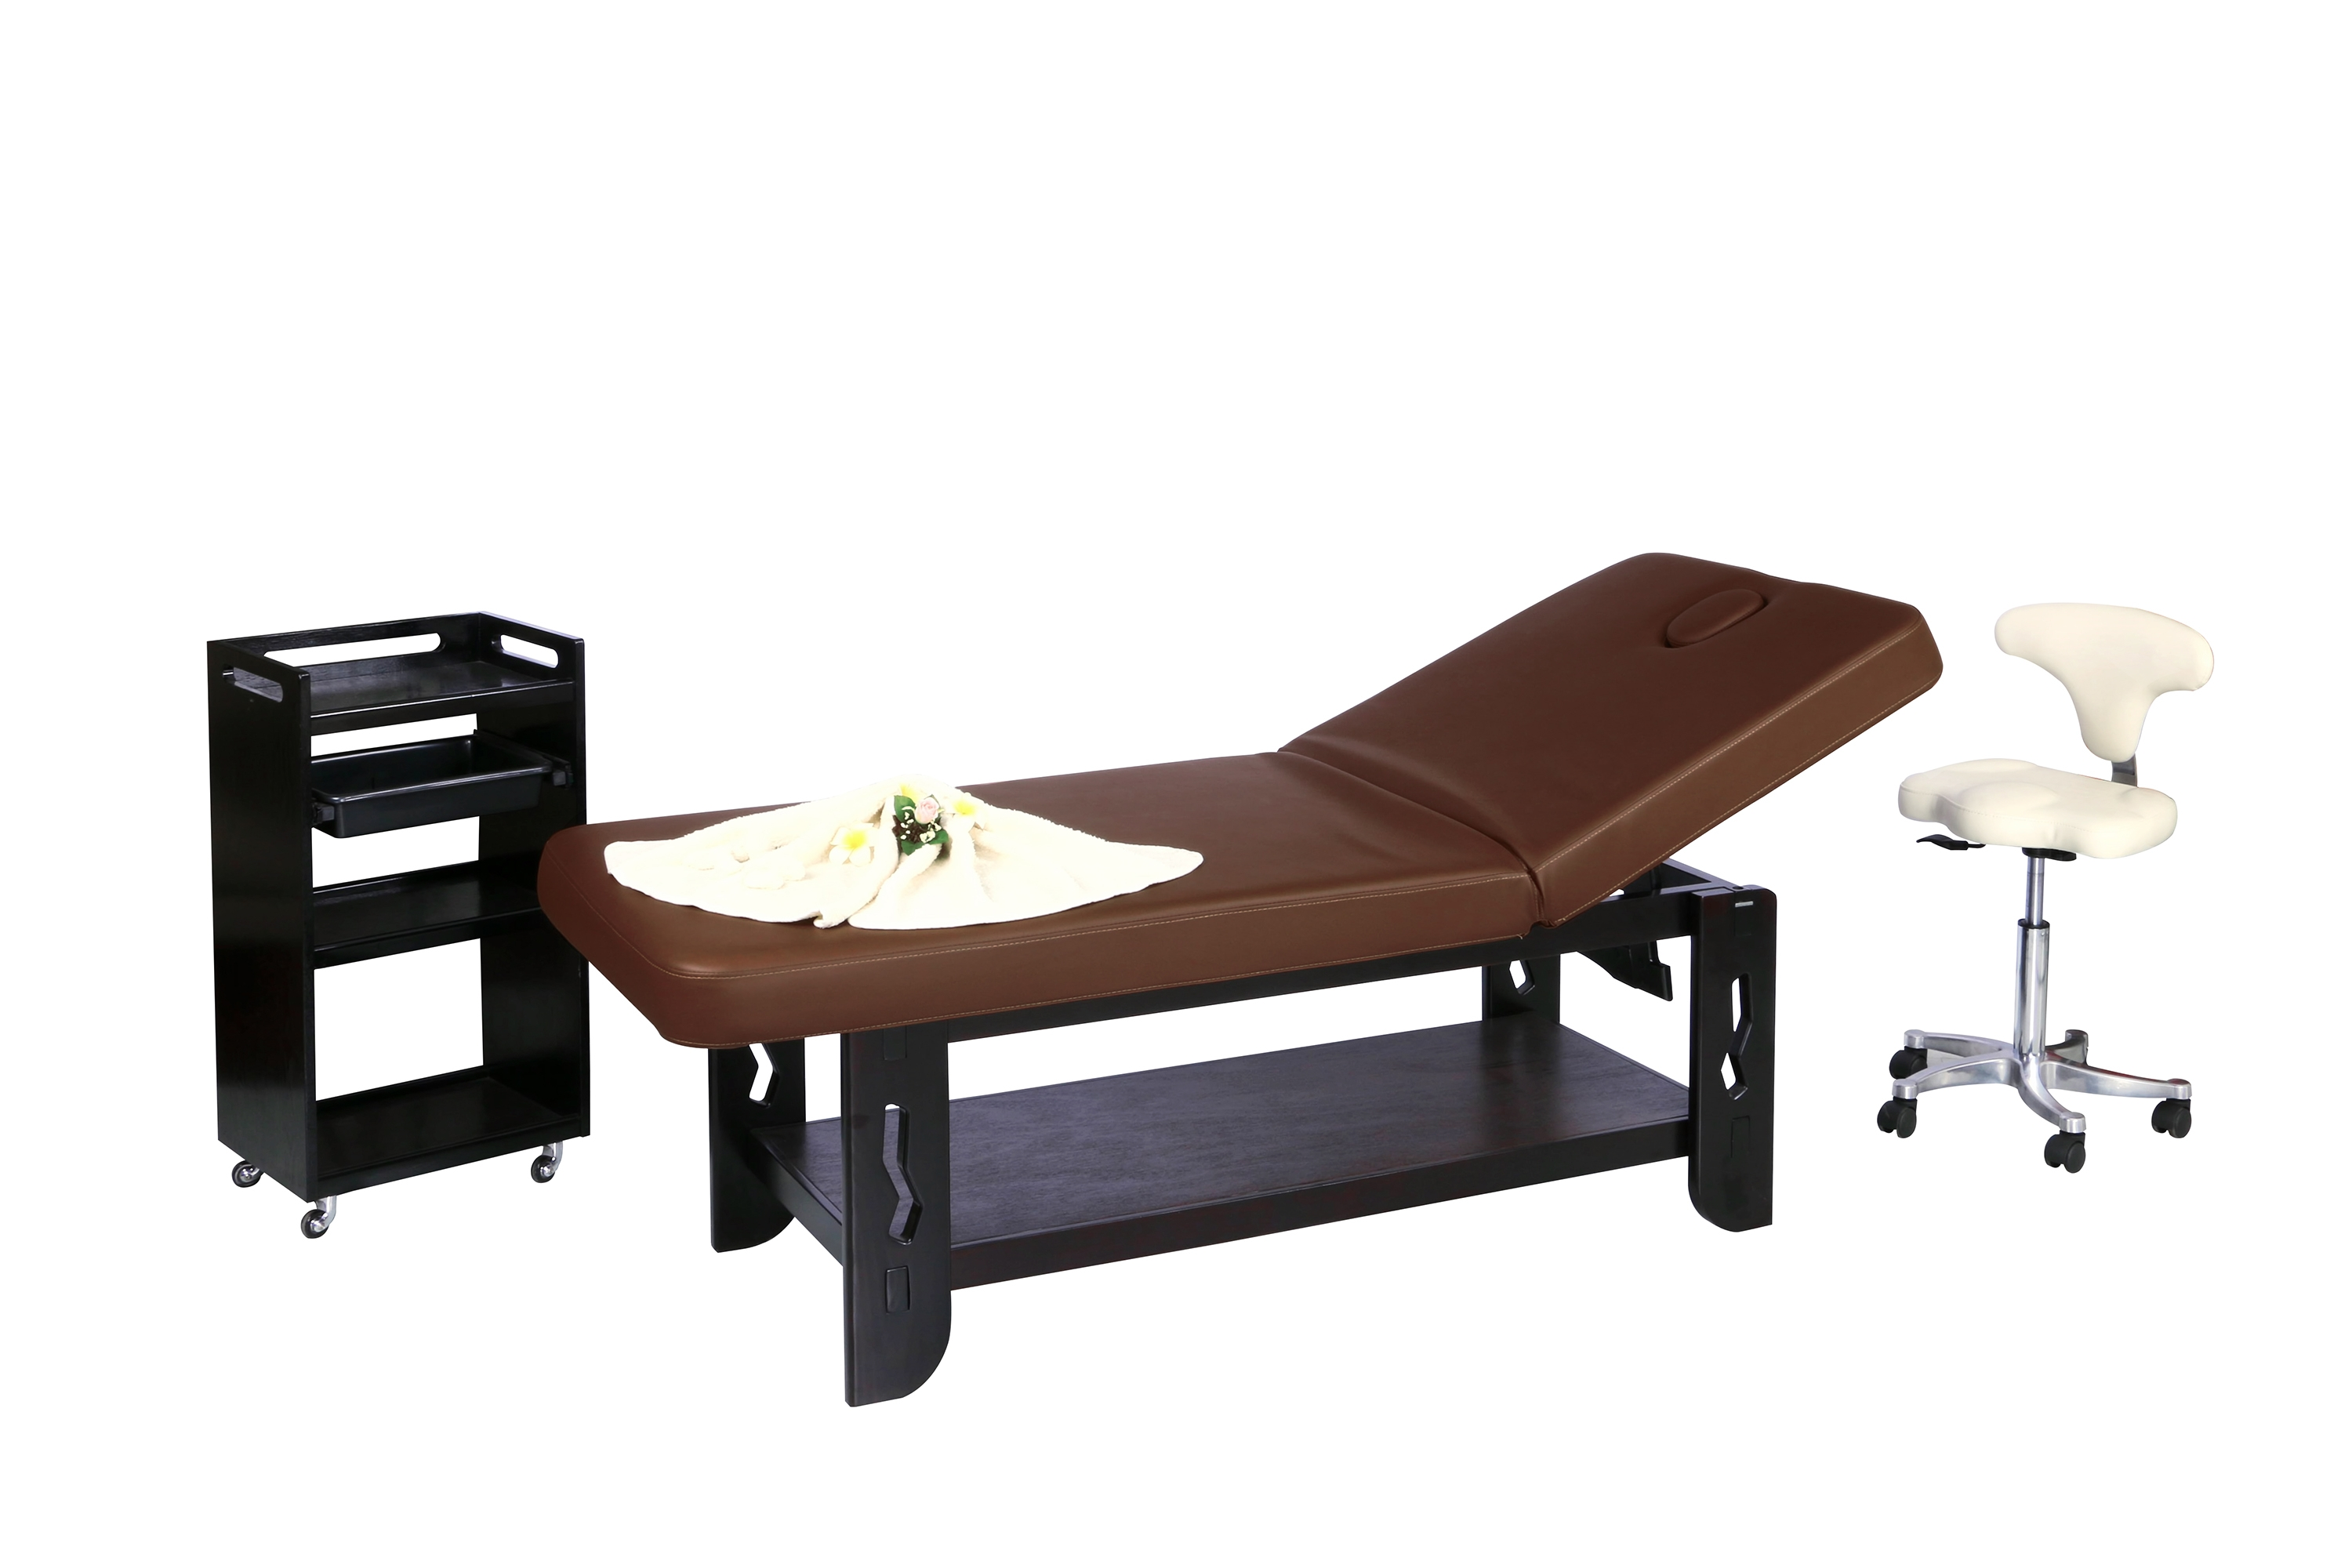 new for incline factory jade healthcare therapy with direct massager premium latest ceragem decline product and table massage korea sale function design stone best byriver bed store